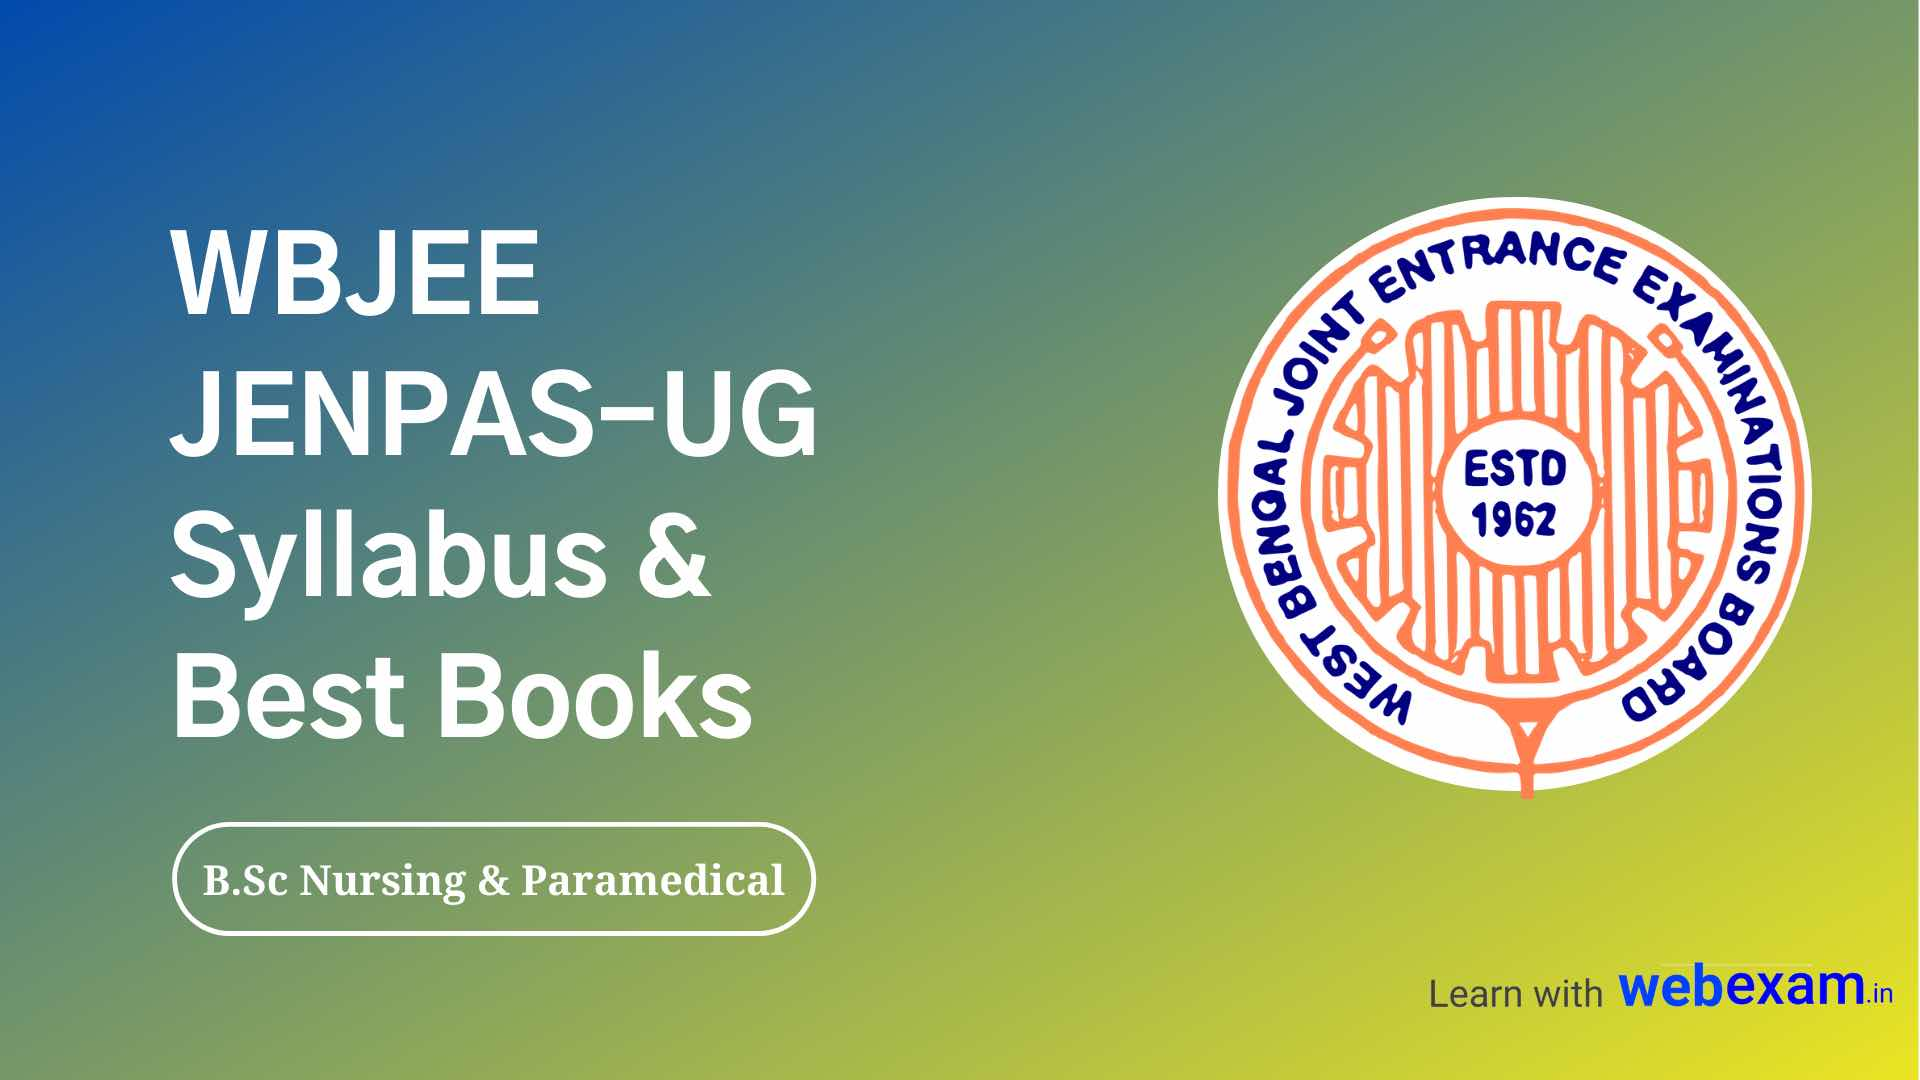 WBJEEB JENPAS-UG Syllabus and books